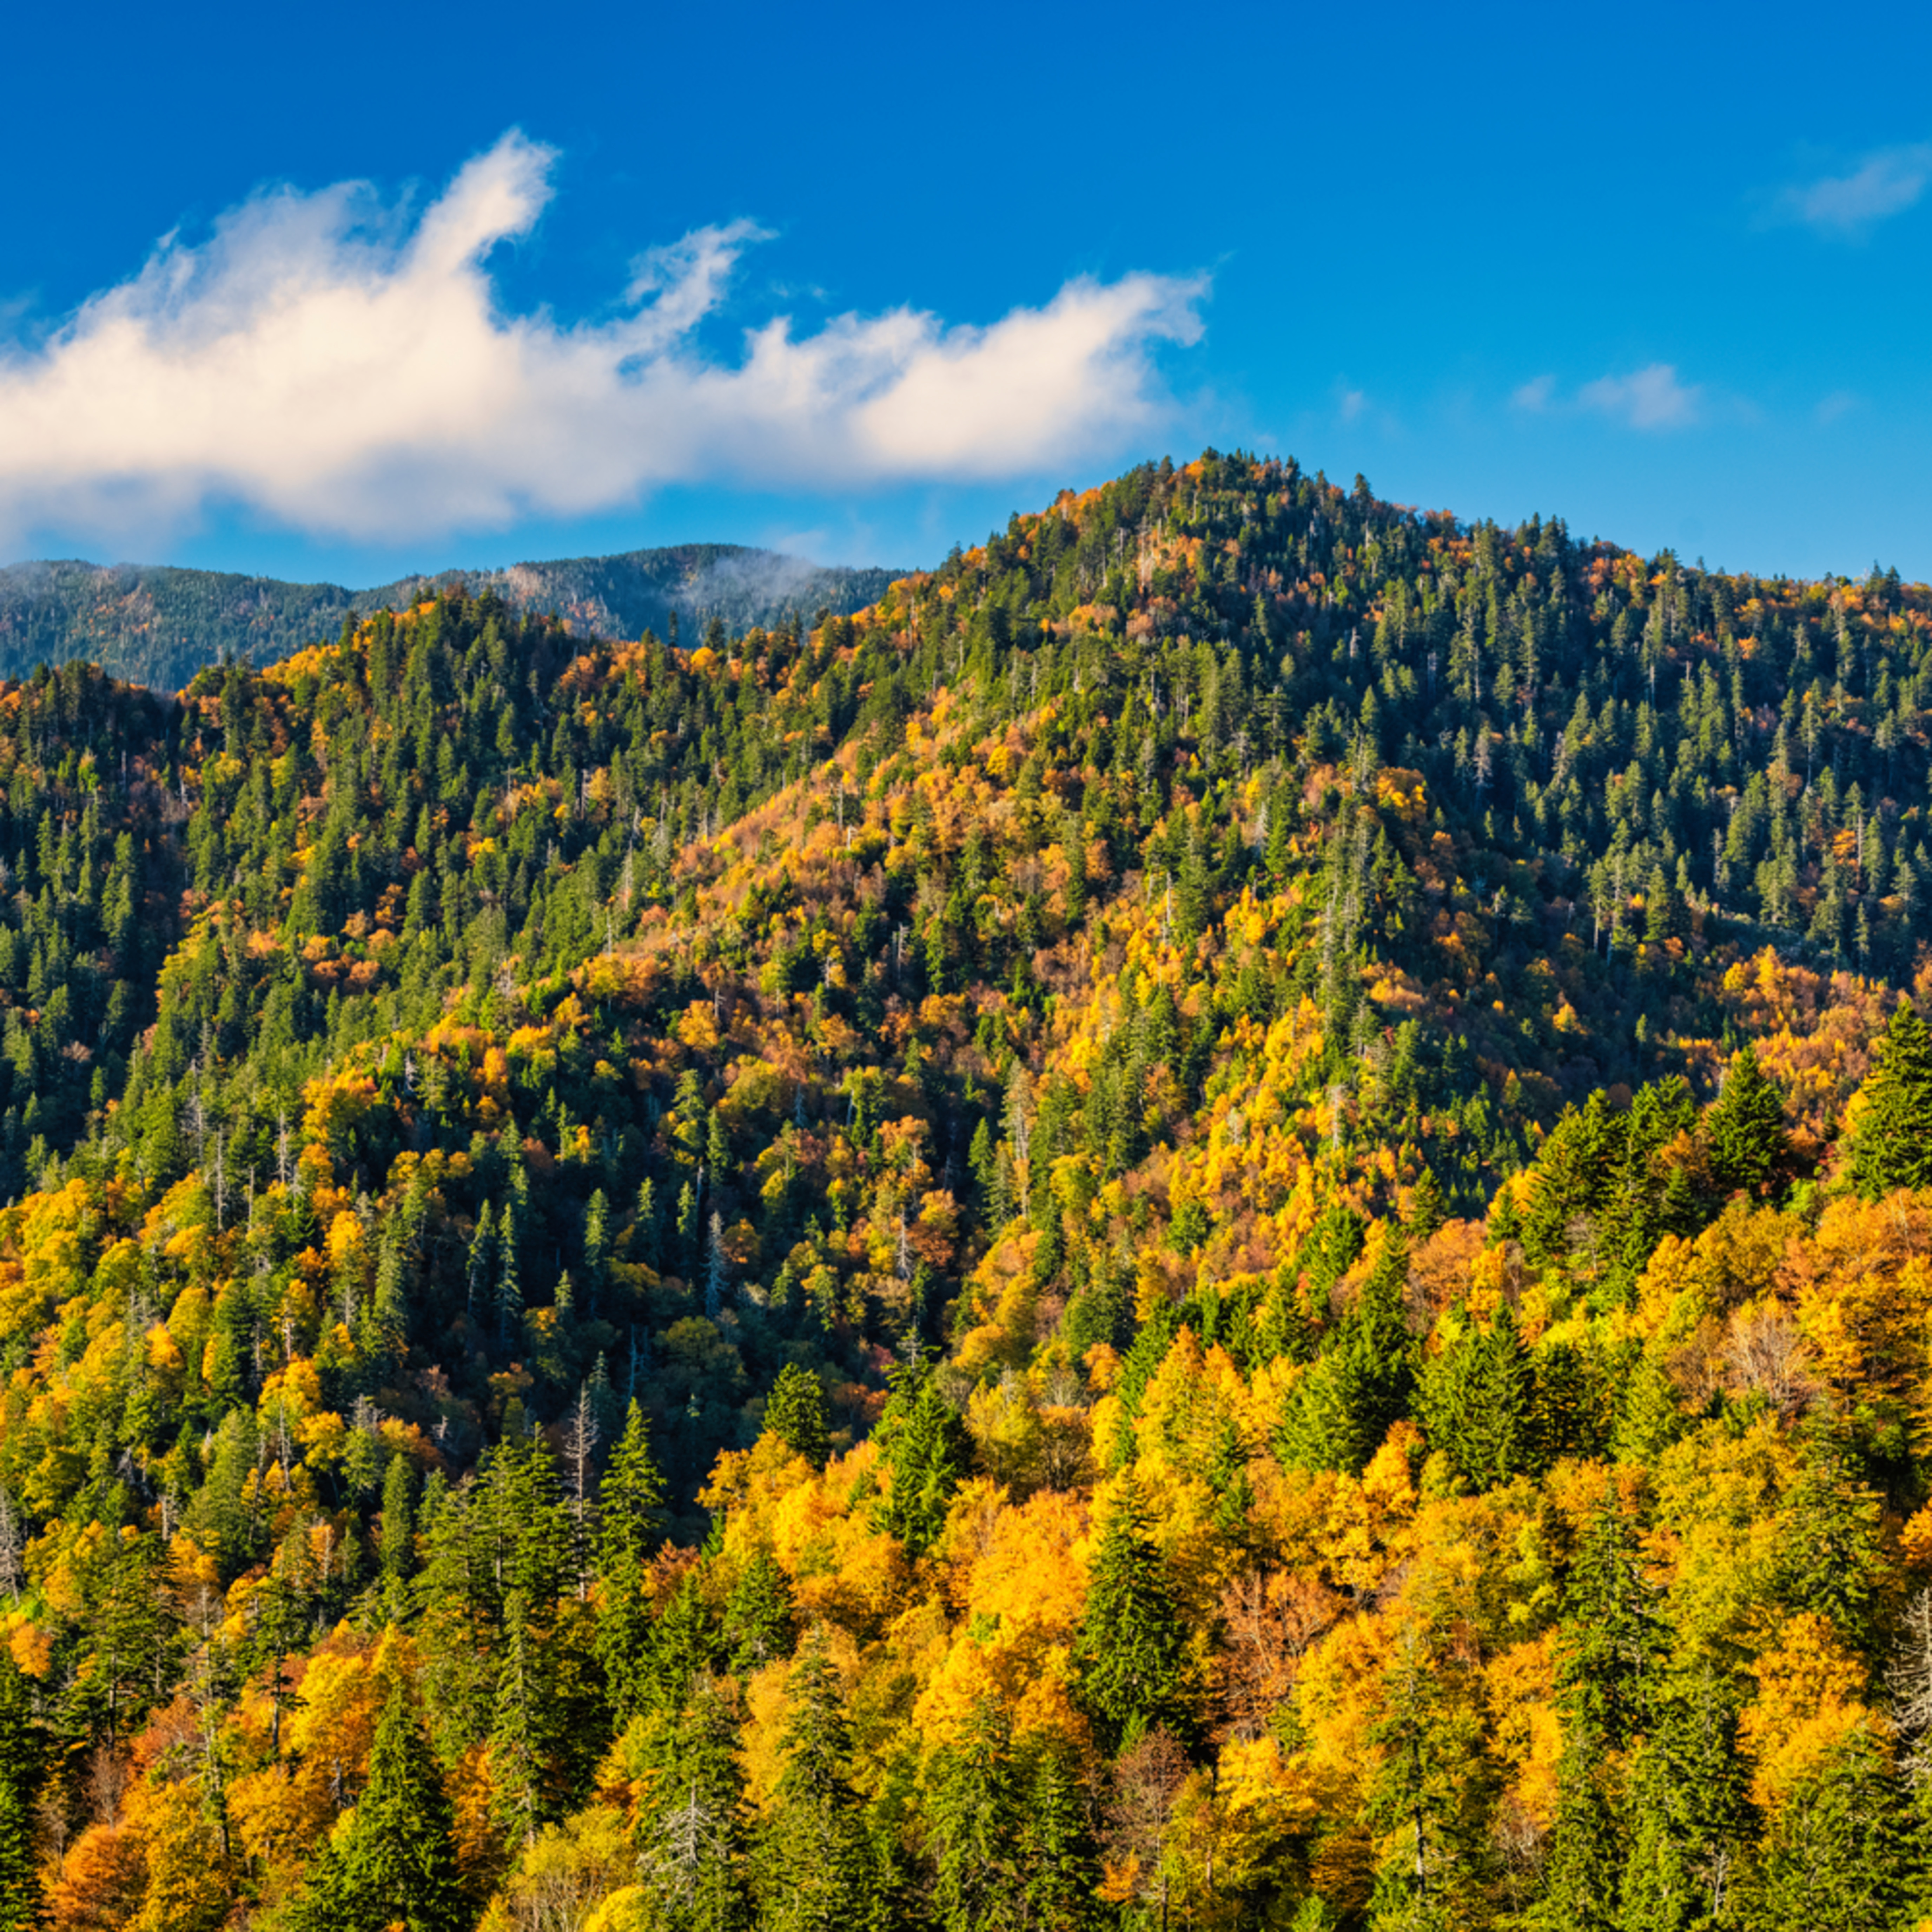 Andy crawford photography golden smokies 01 inqywm